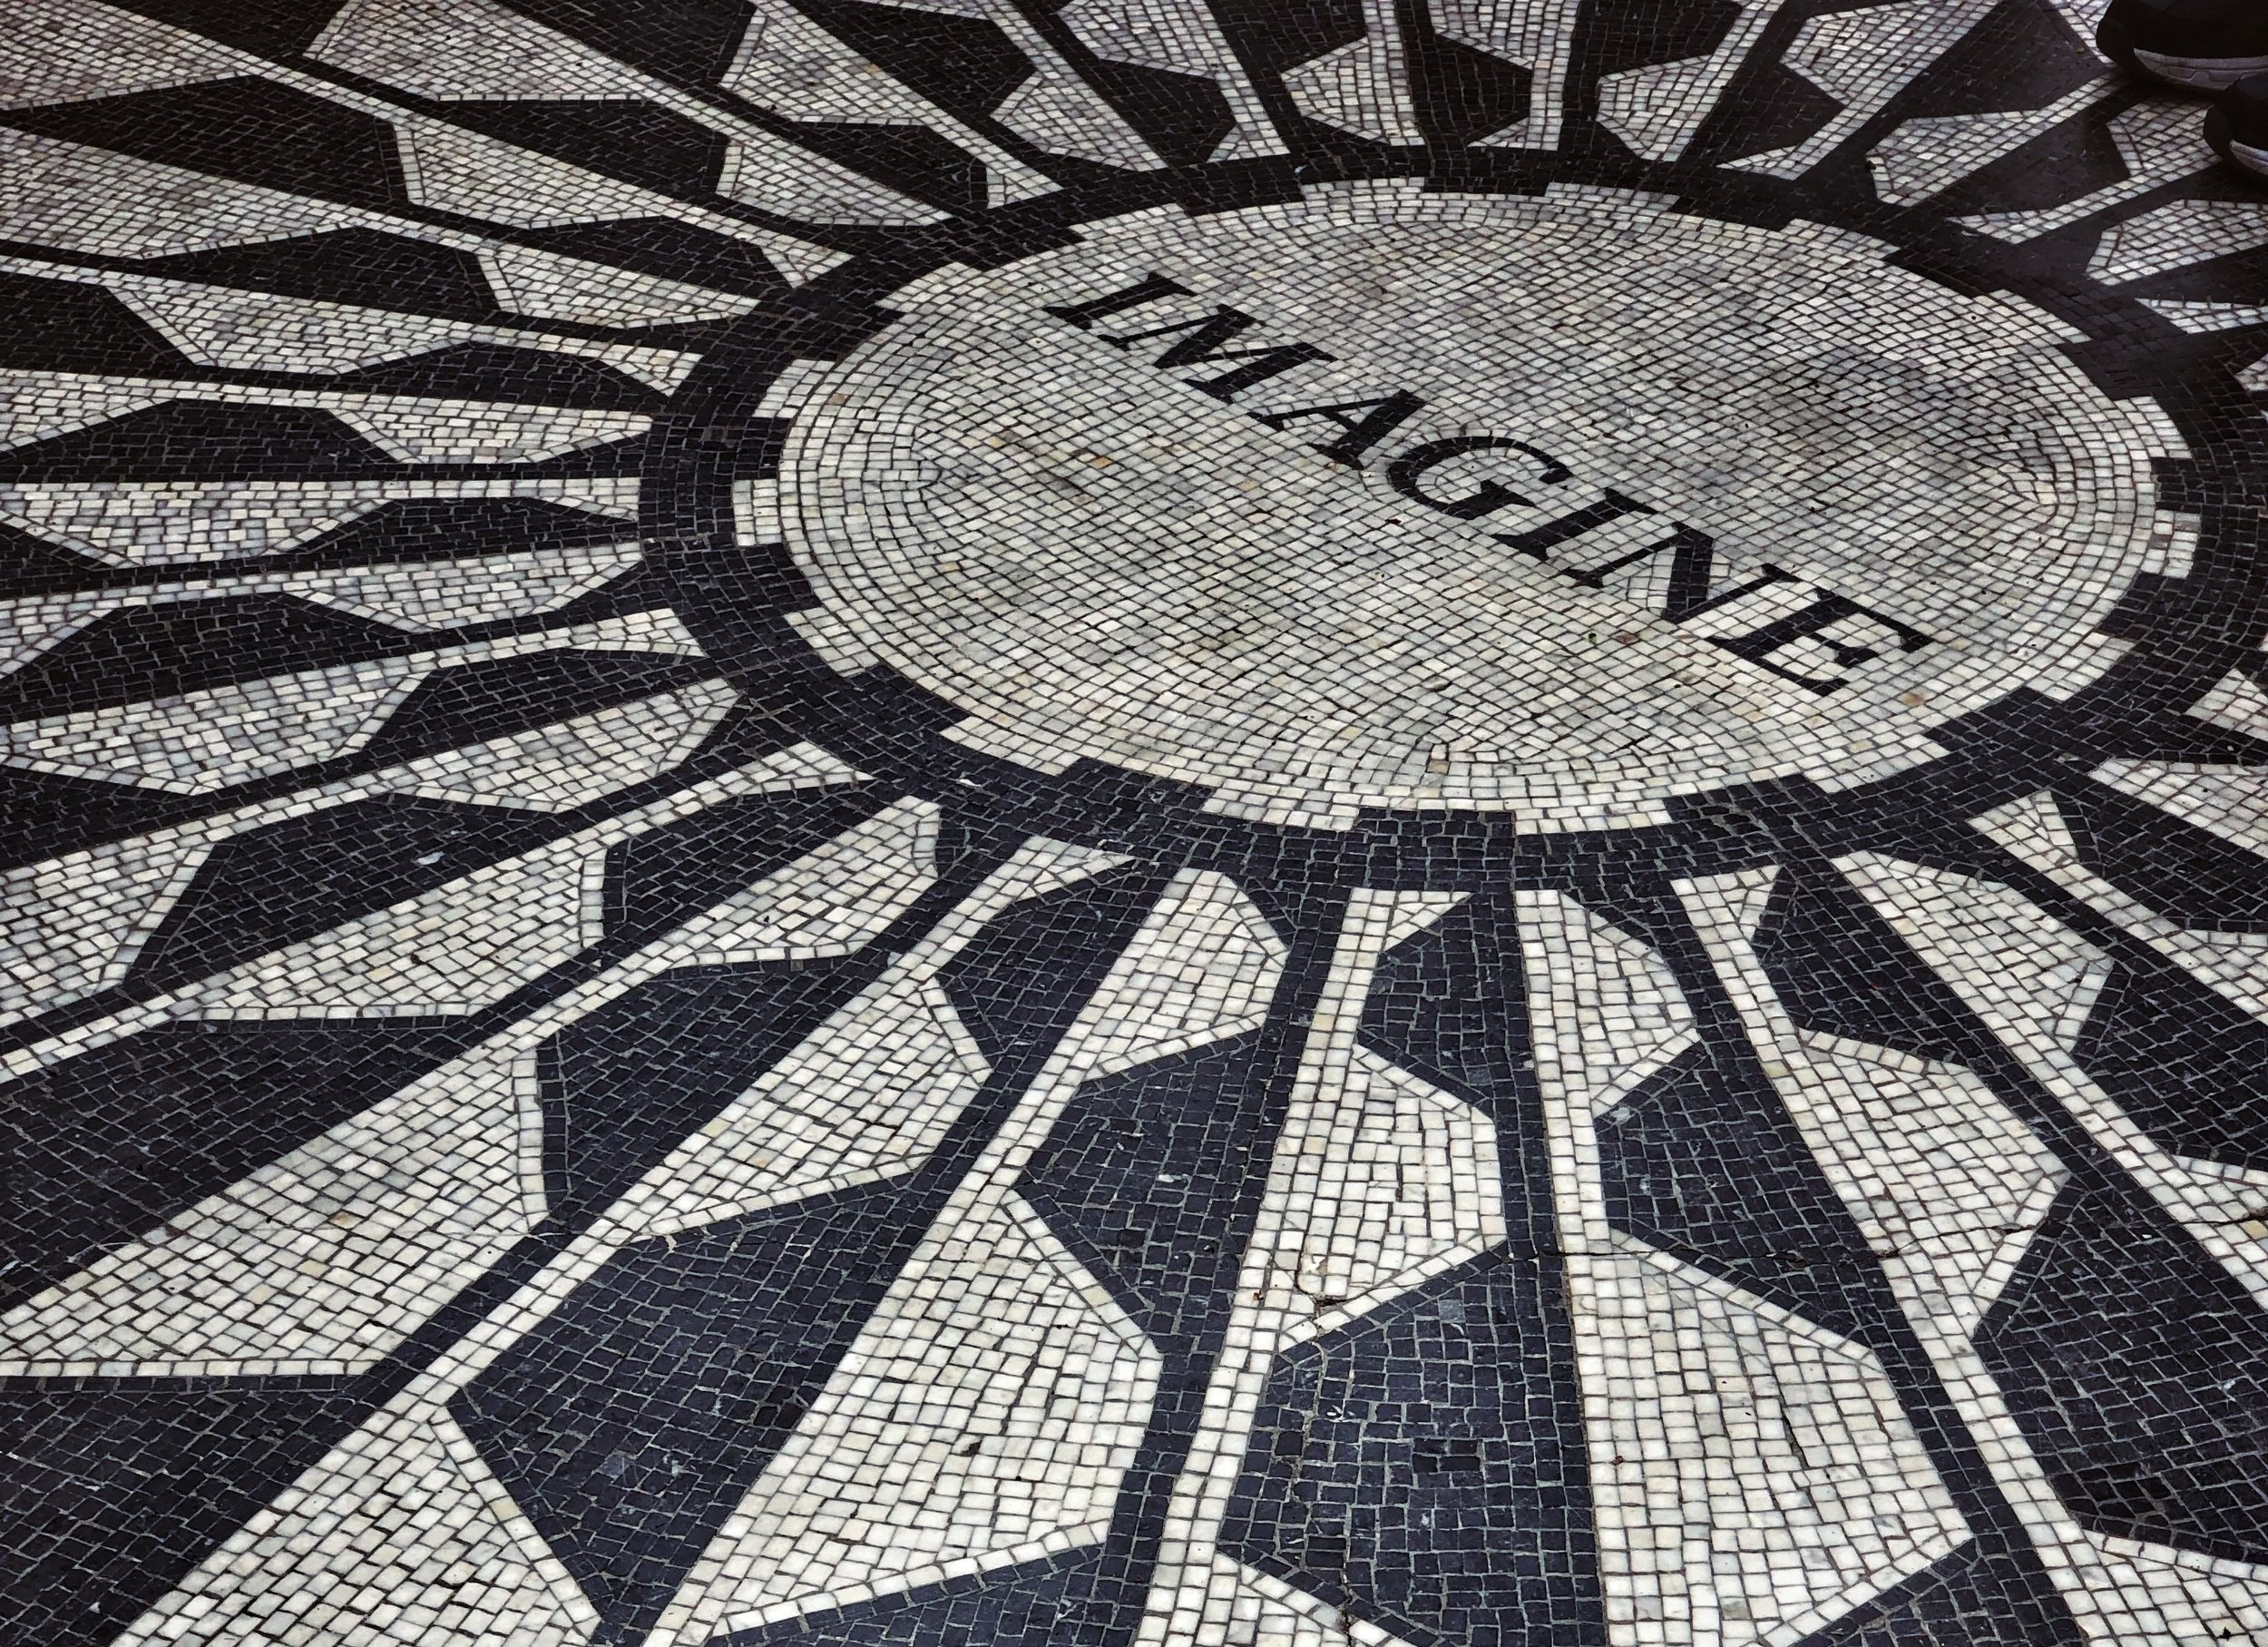 Strawberry Fields - The memorial to John Lennon in Central Park.Photo by Miriam Bourin/Global Local Traveler